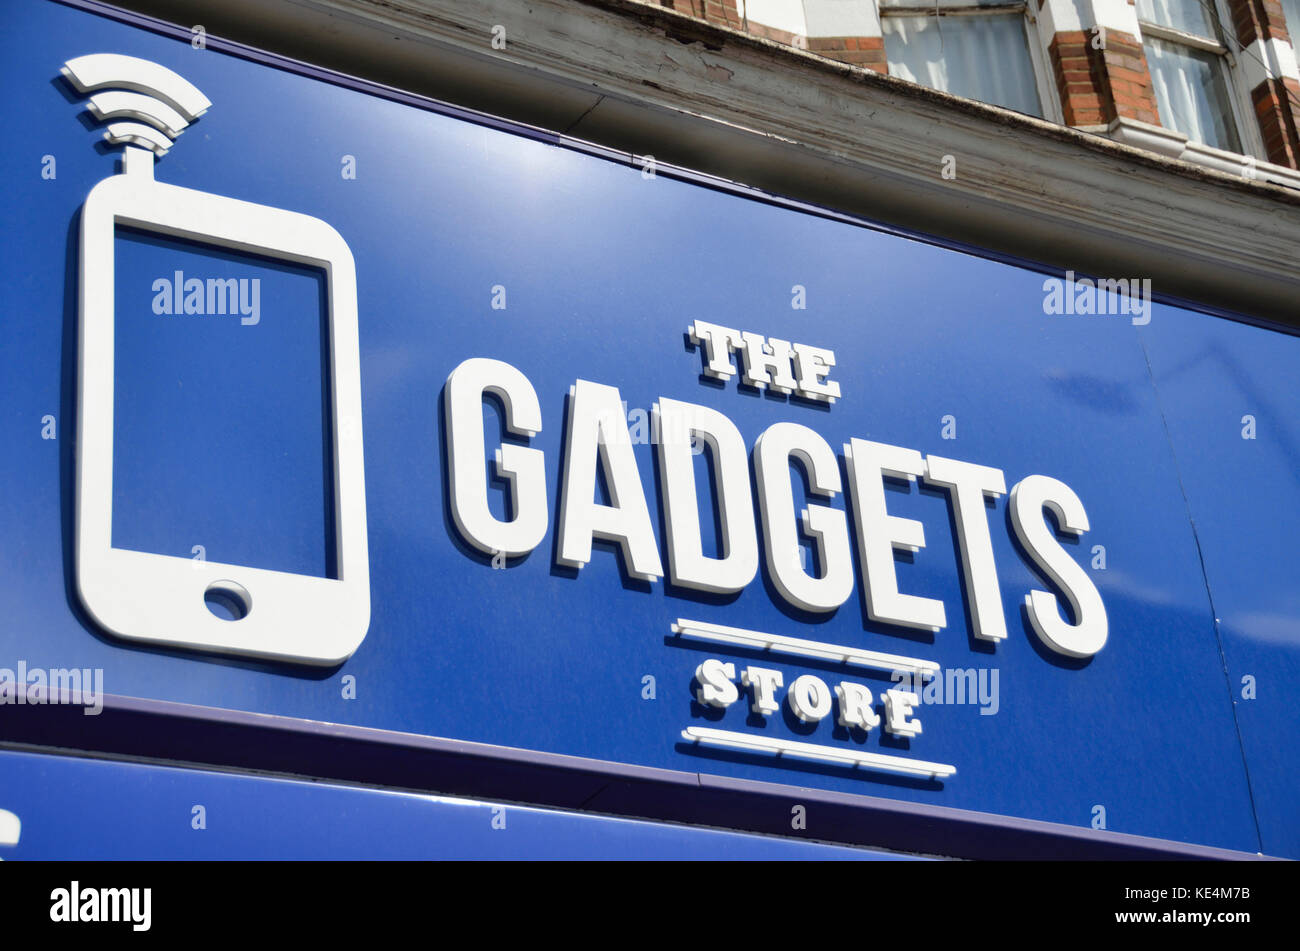 The Gadgets Store shop sign, North Finchley, London, UK. - Stock Image